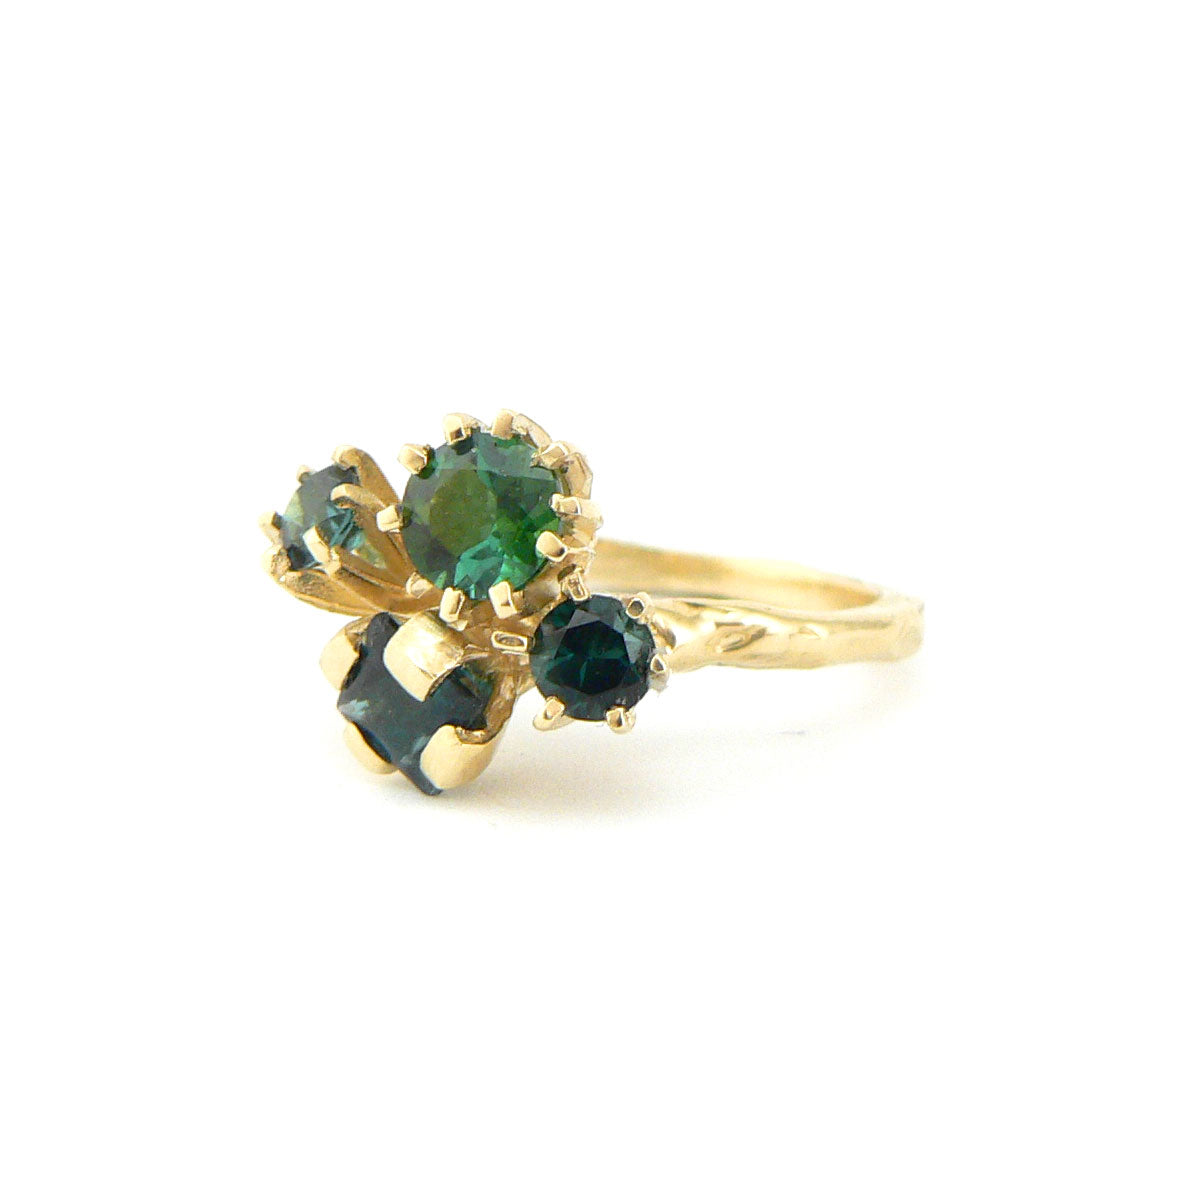 Green tourmaline cluster ring in 18ct yellow gold, bespoke custom handmade